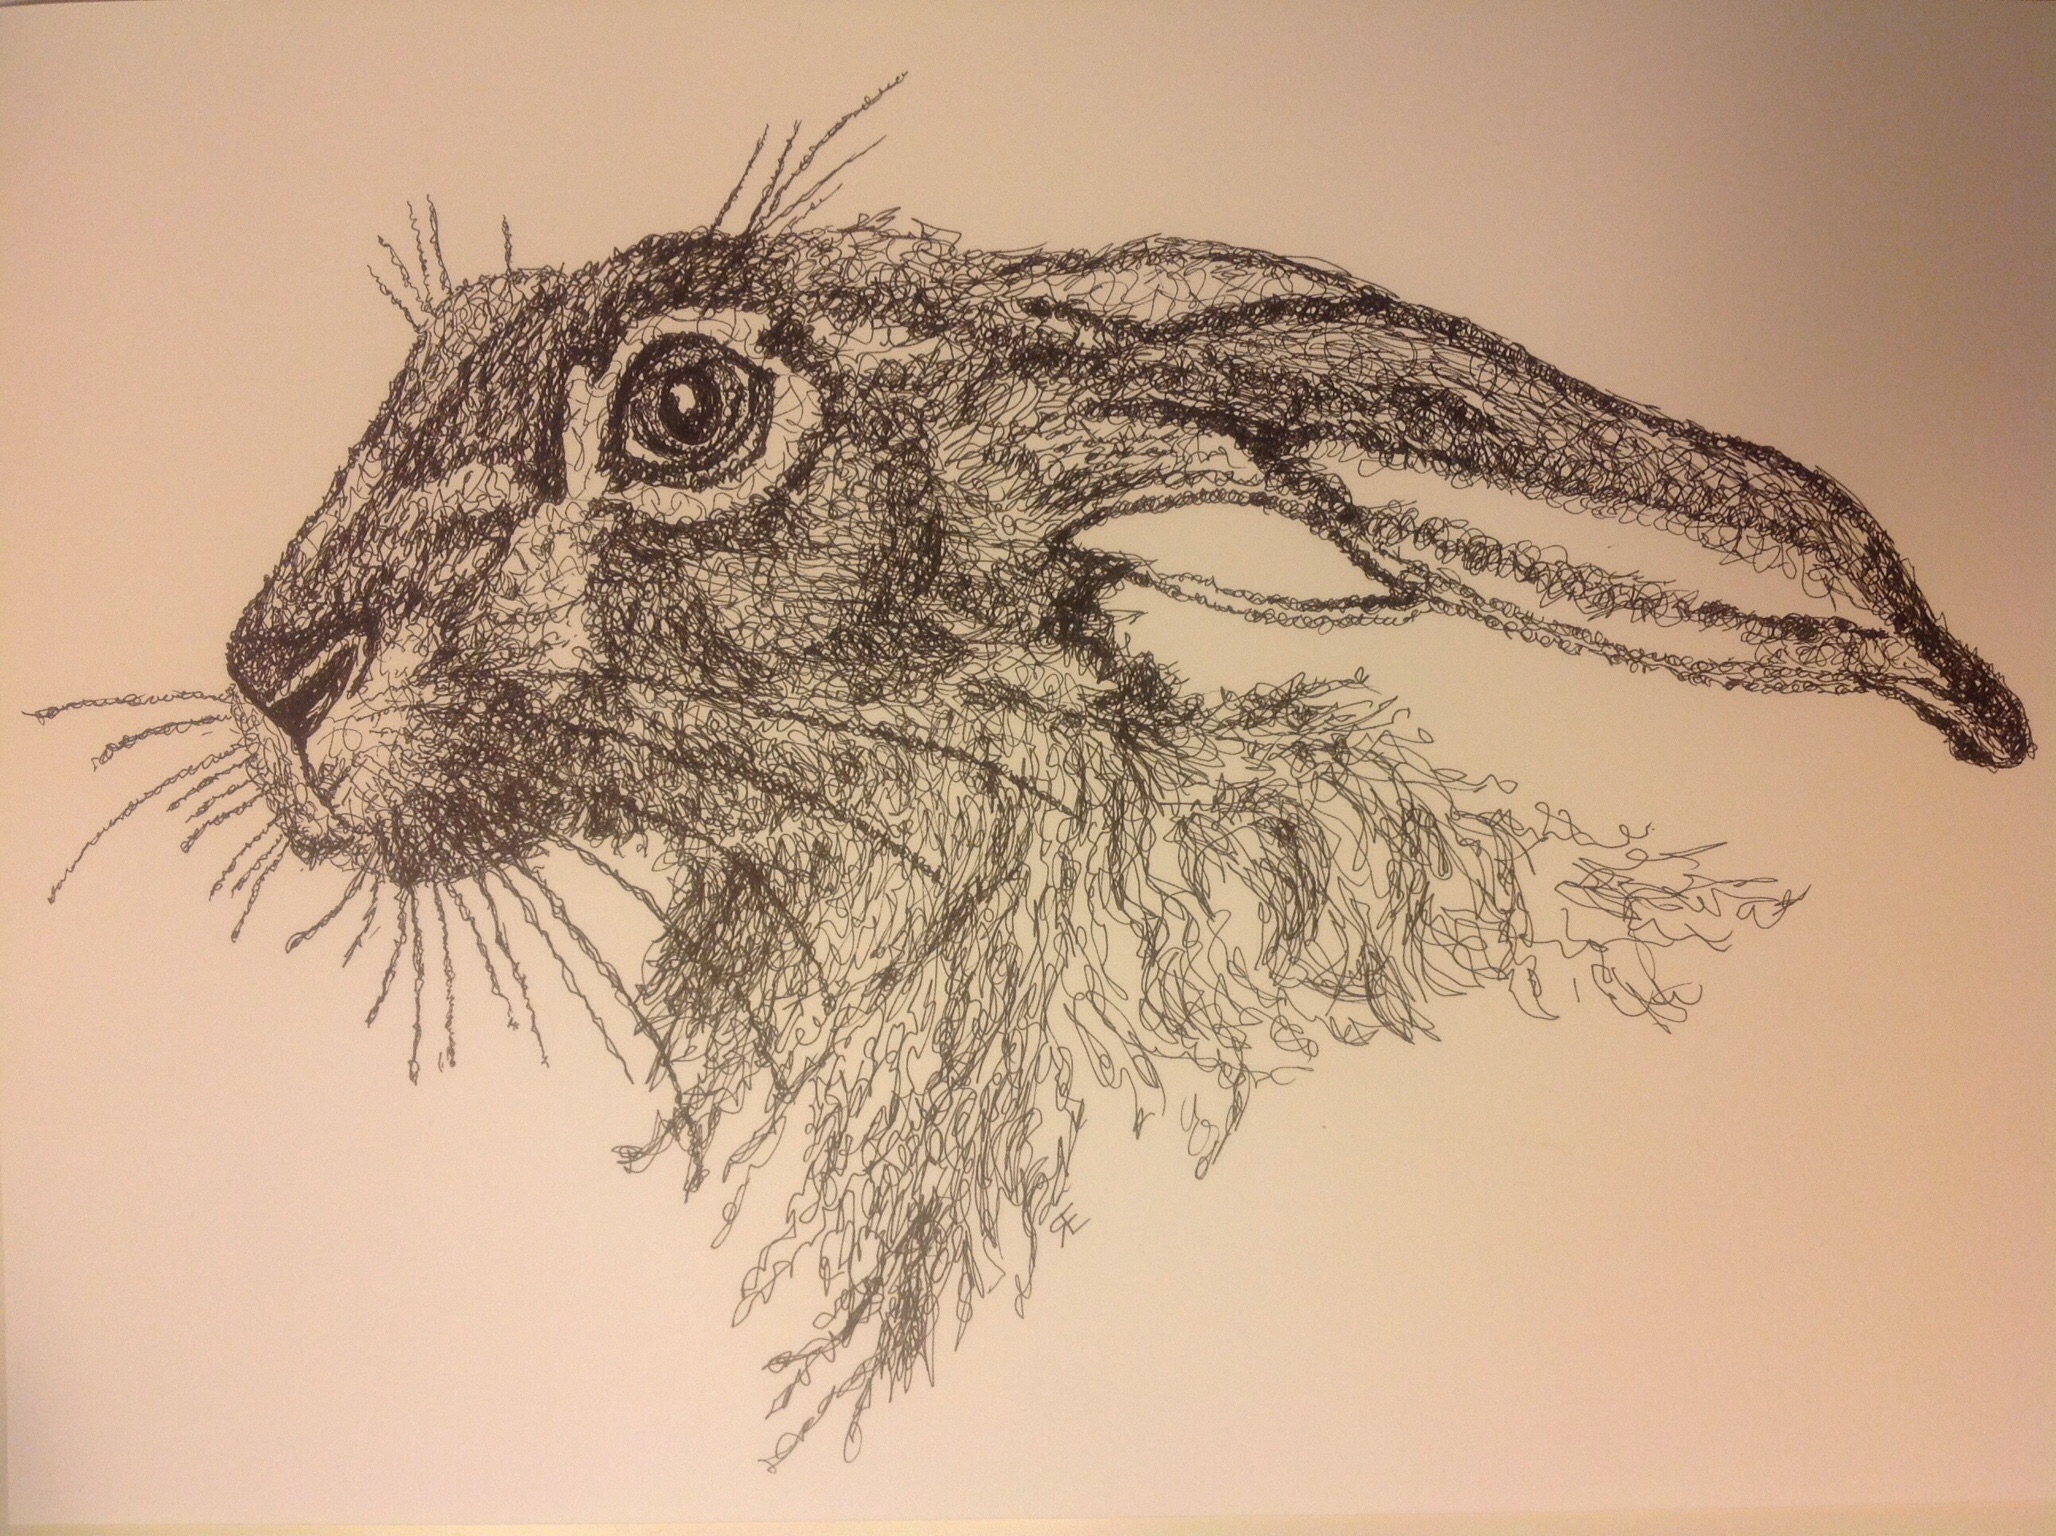 Scribble Drawing Art : Back to basics pen scribble art hare rebeccaevans